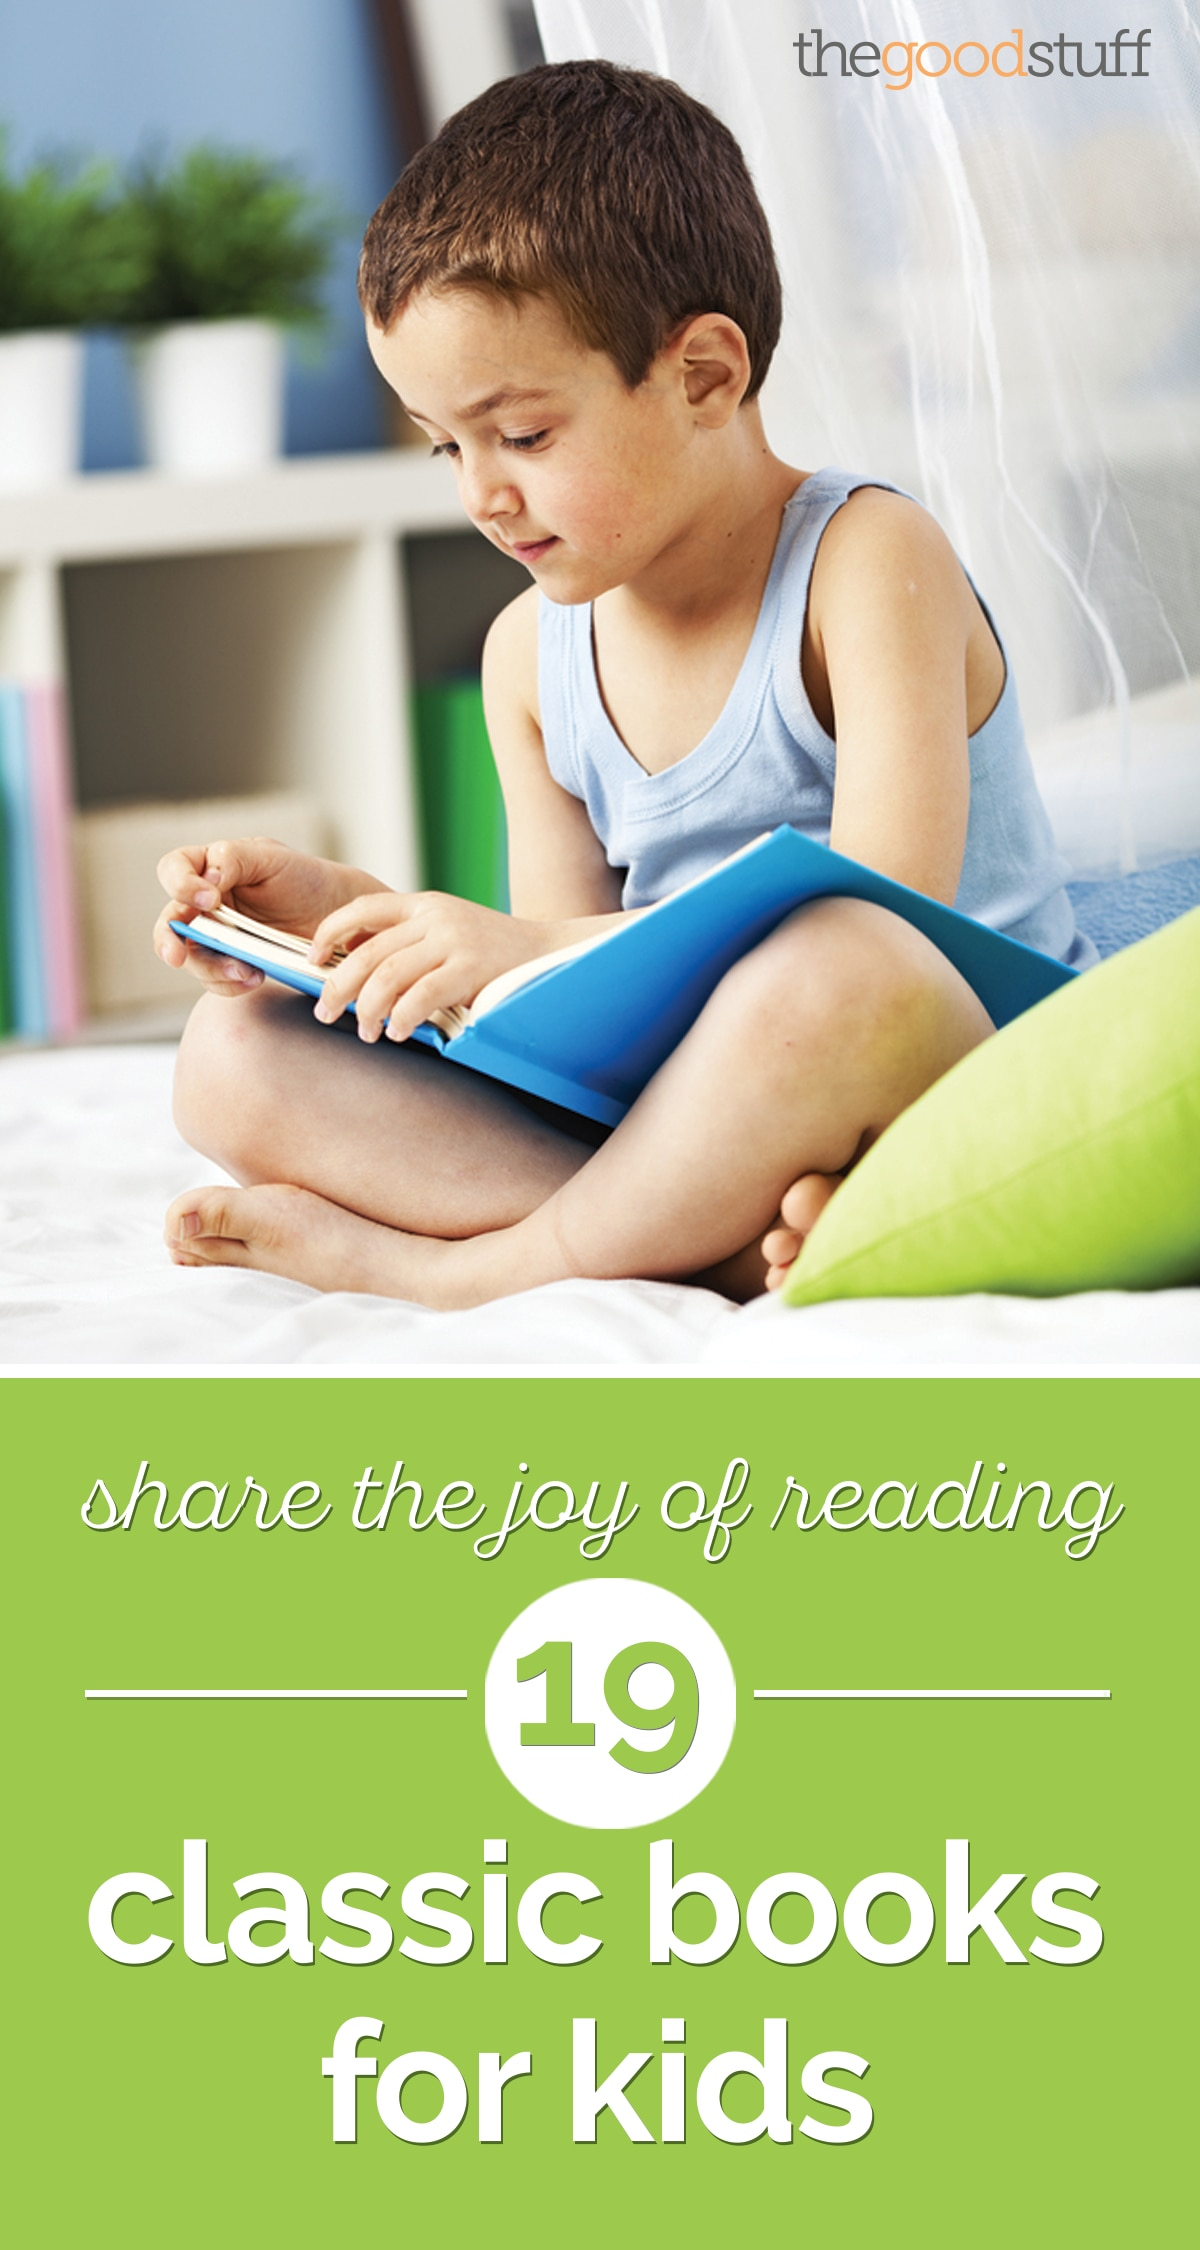 Share the Joy of Reading: 19 Classic Books for Kids | thegoodstuff